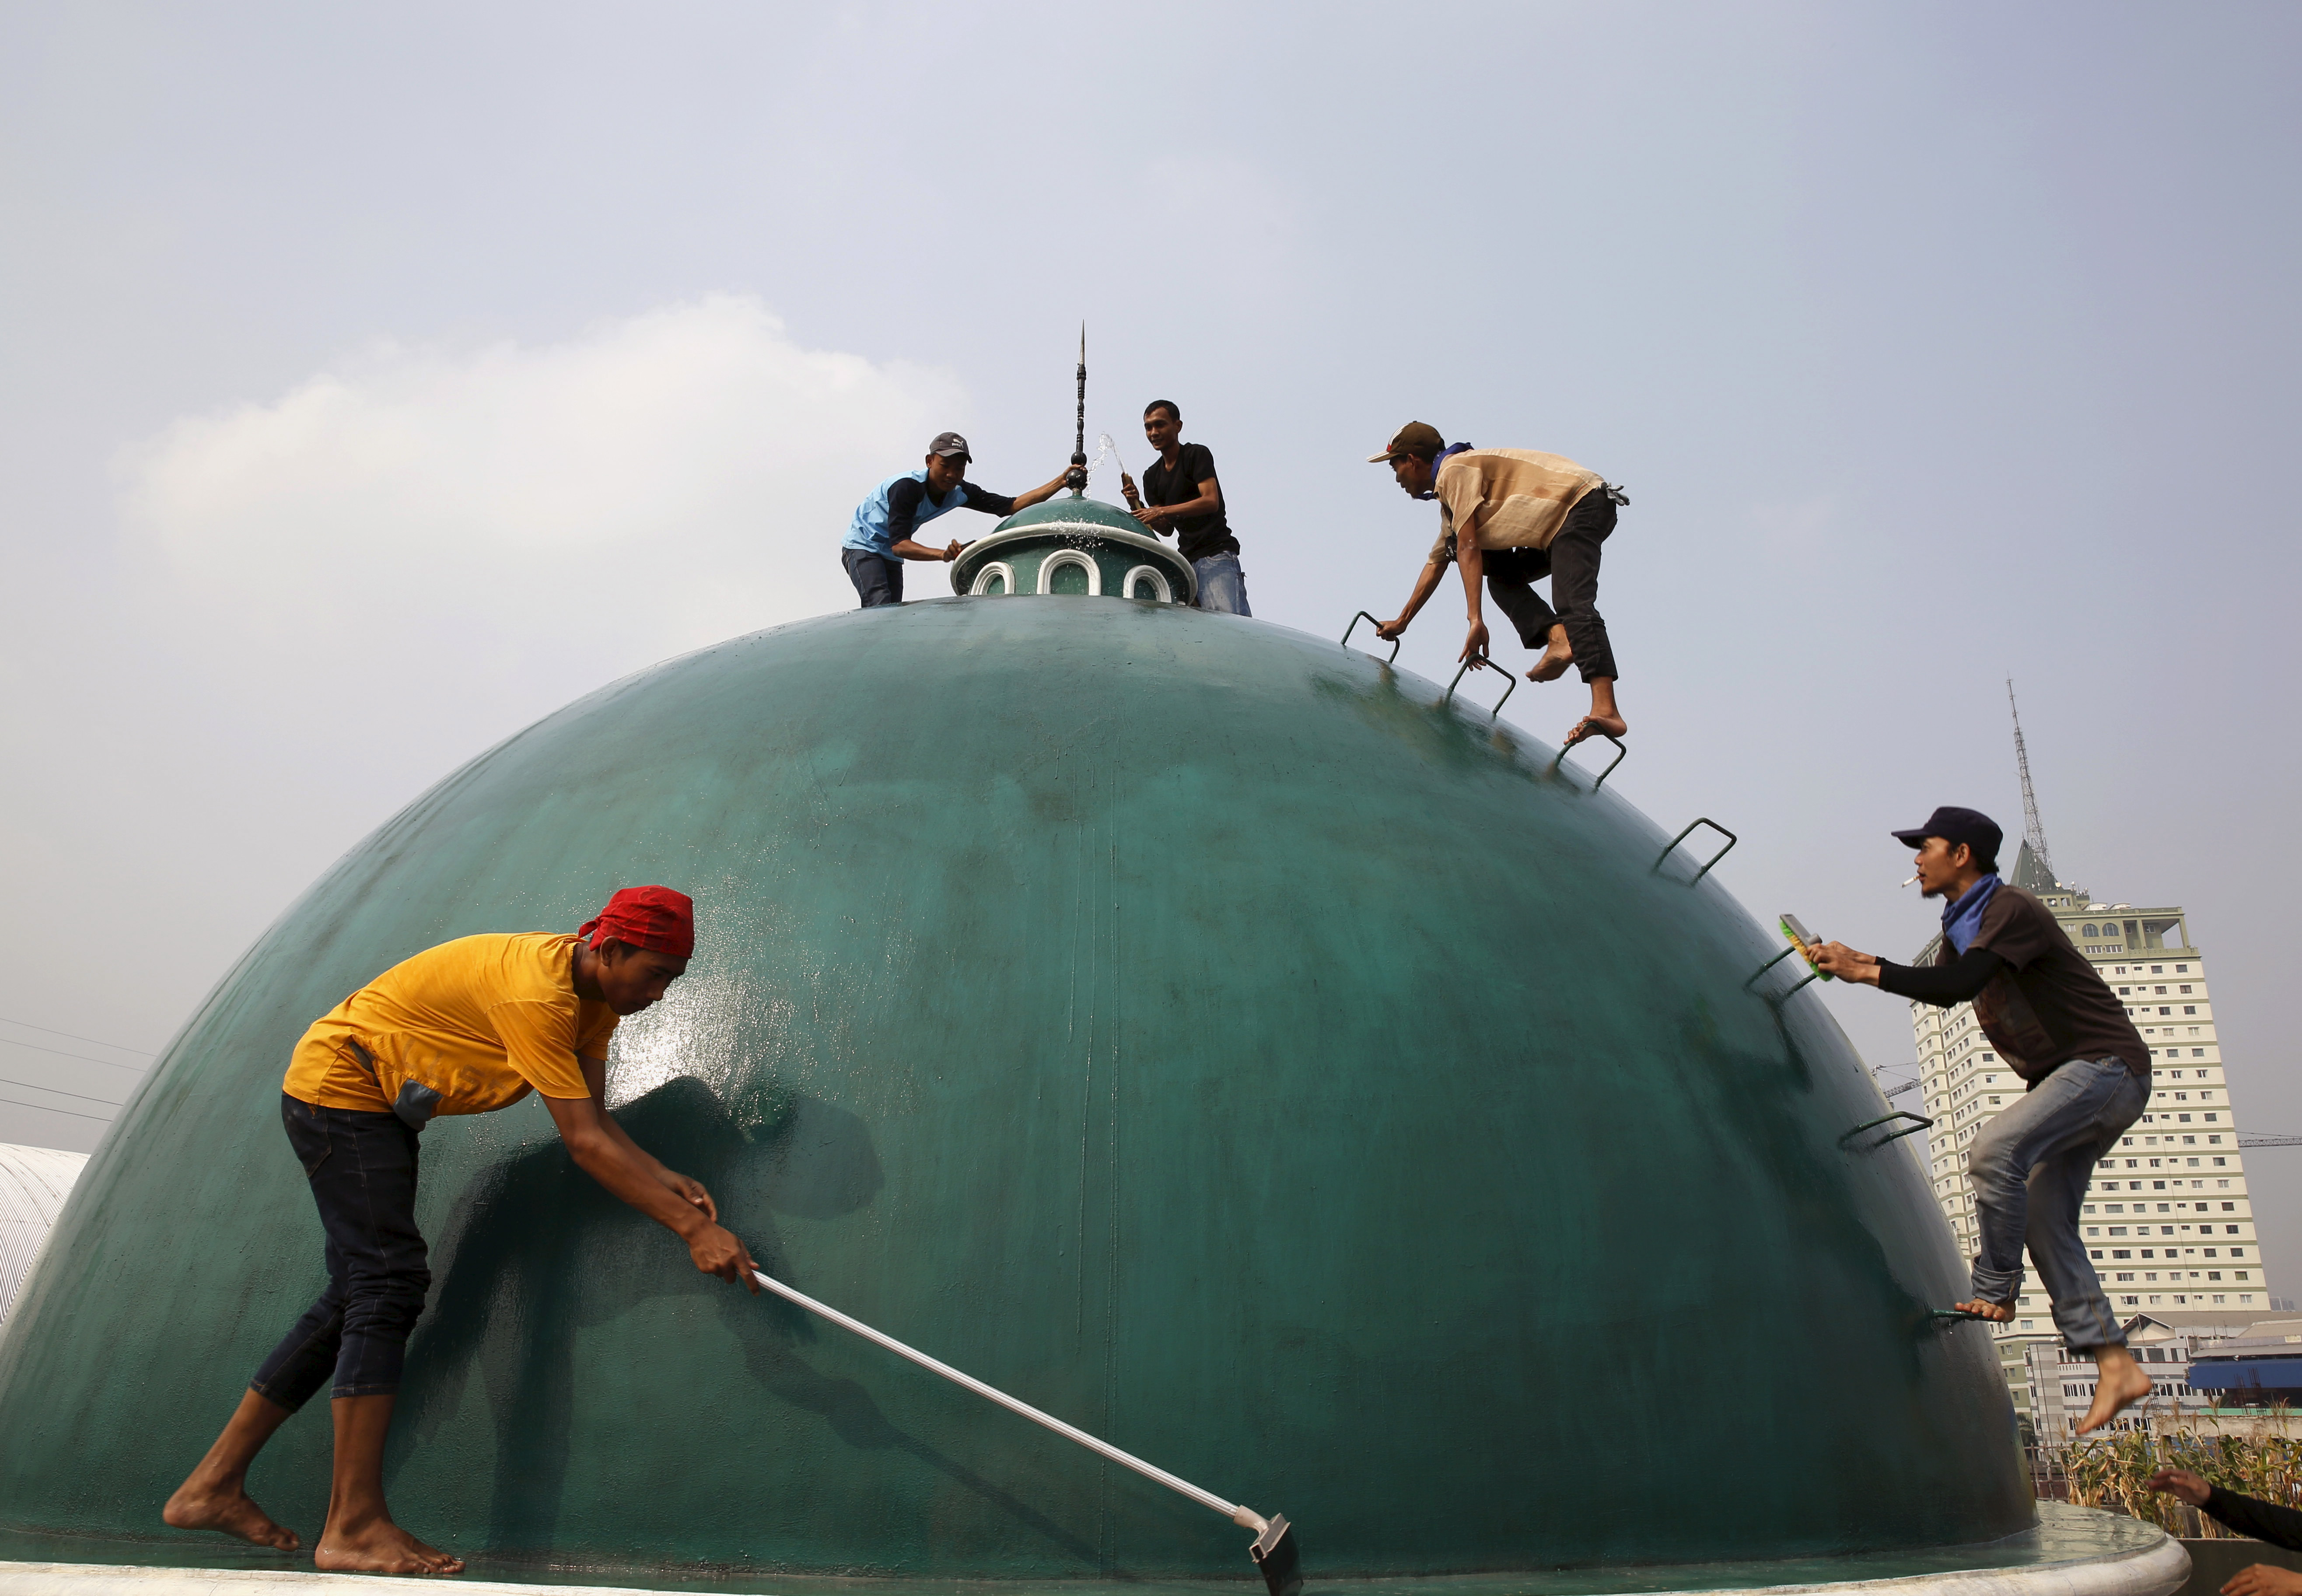 Youths clean the dome of a mosque ahead  of Ramadan in Jakarta, Indonesia on June 15, 2015. Photo by Beawiharta/Reuters